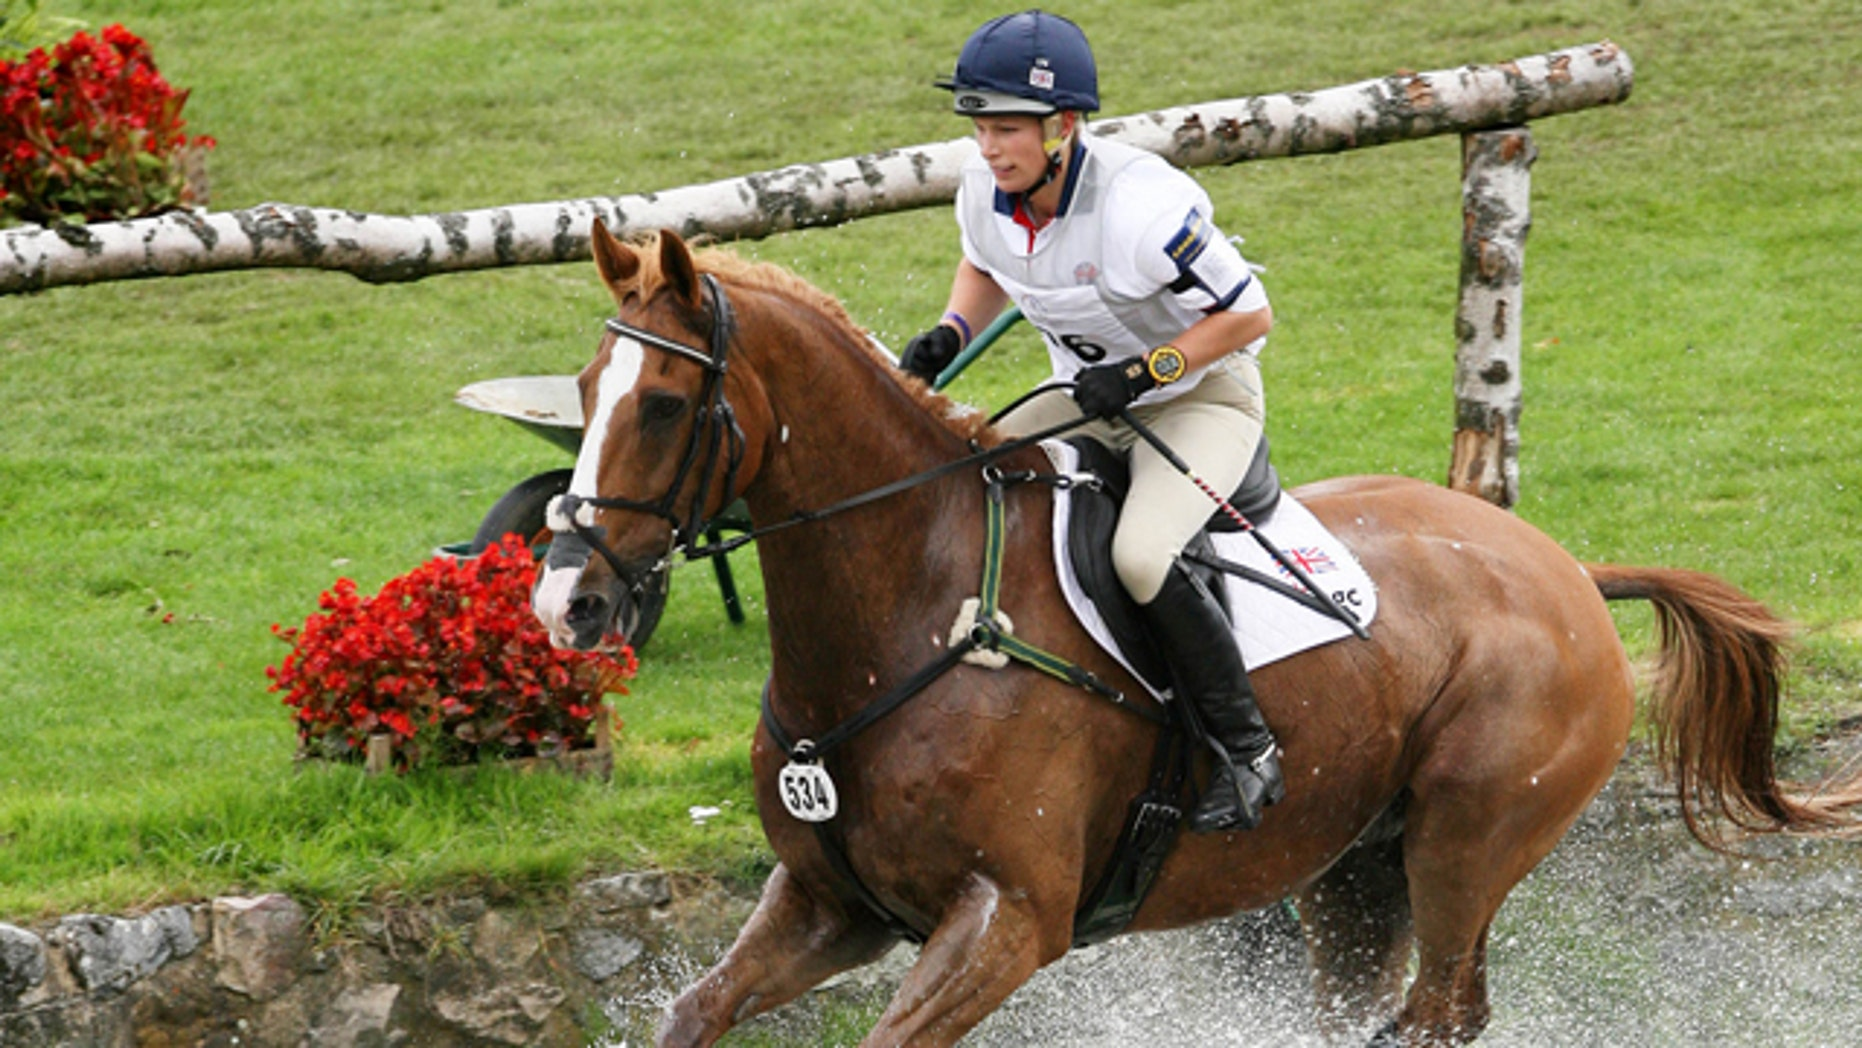 This 2007 file photo shows Britain's Zara Phillips,  granddaughter to Queen Elizabeth II,  riding 'Toytown'  in the Cross Country Test  competition of the Eventing Competitions at the World Equestrian Festival CHIO Aachen 2007 in Aachen, western Germany.